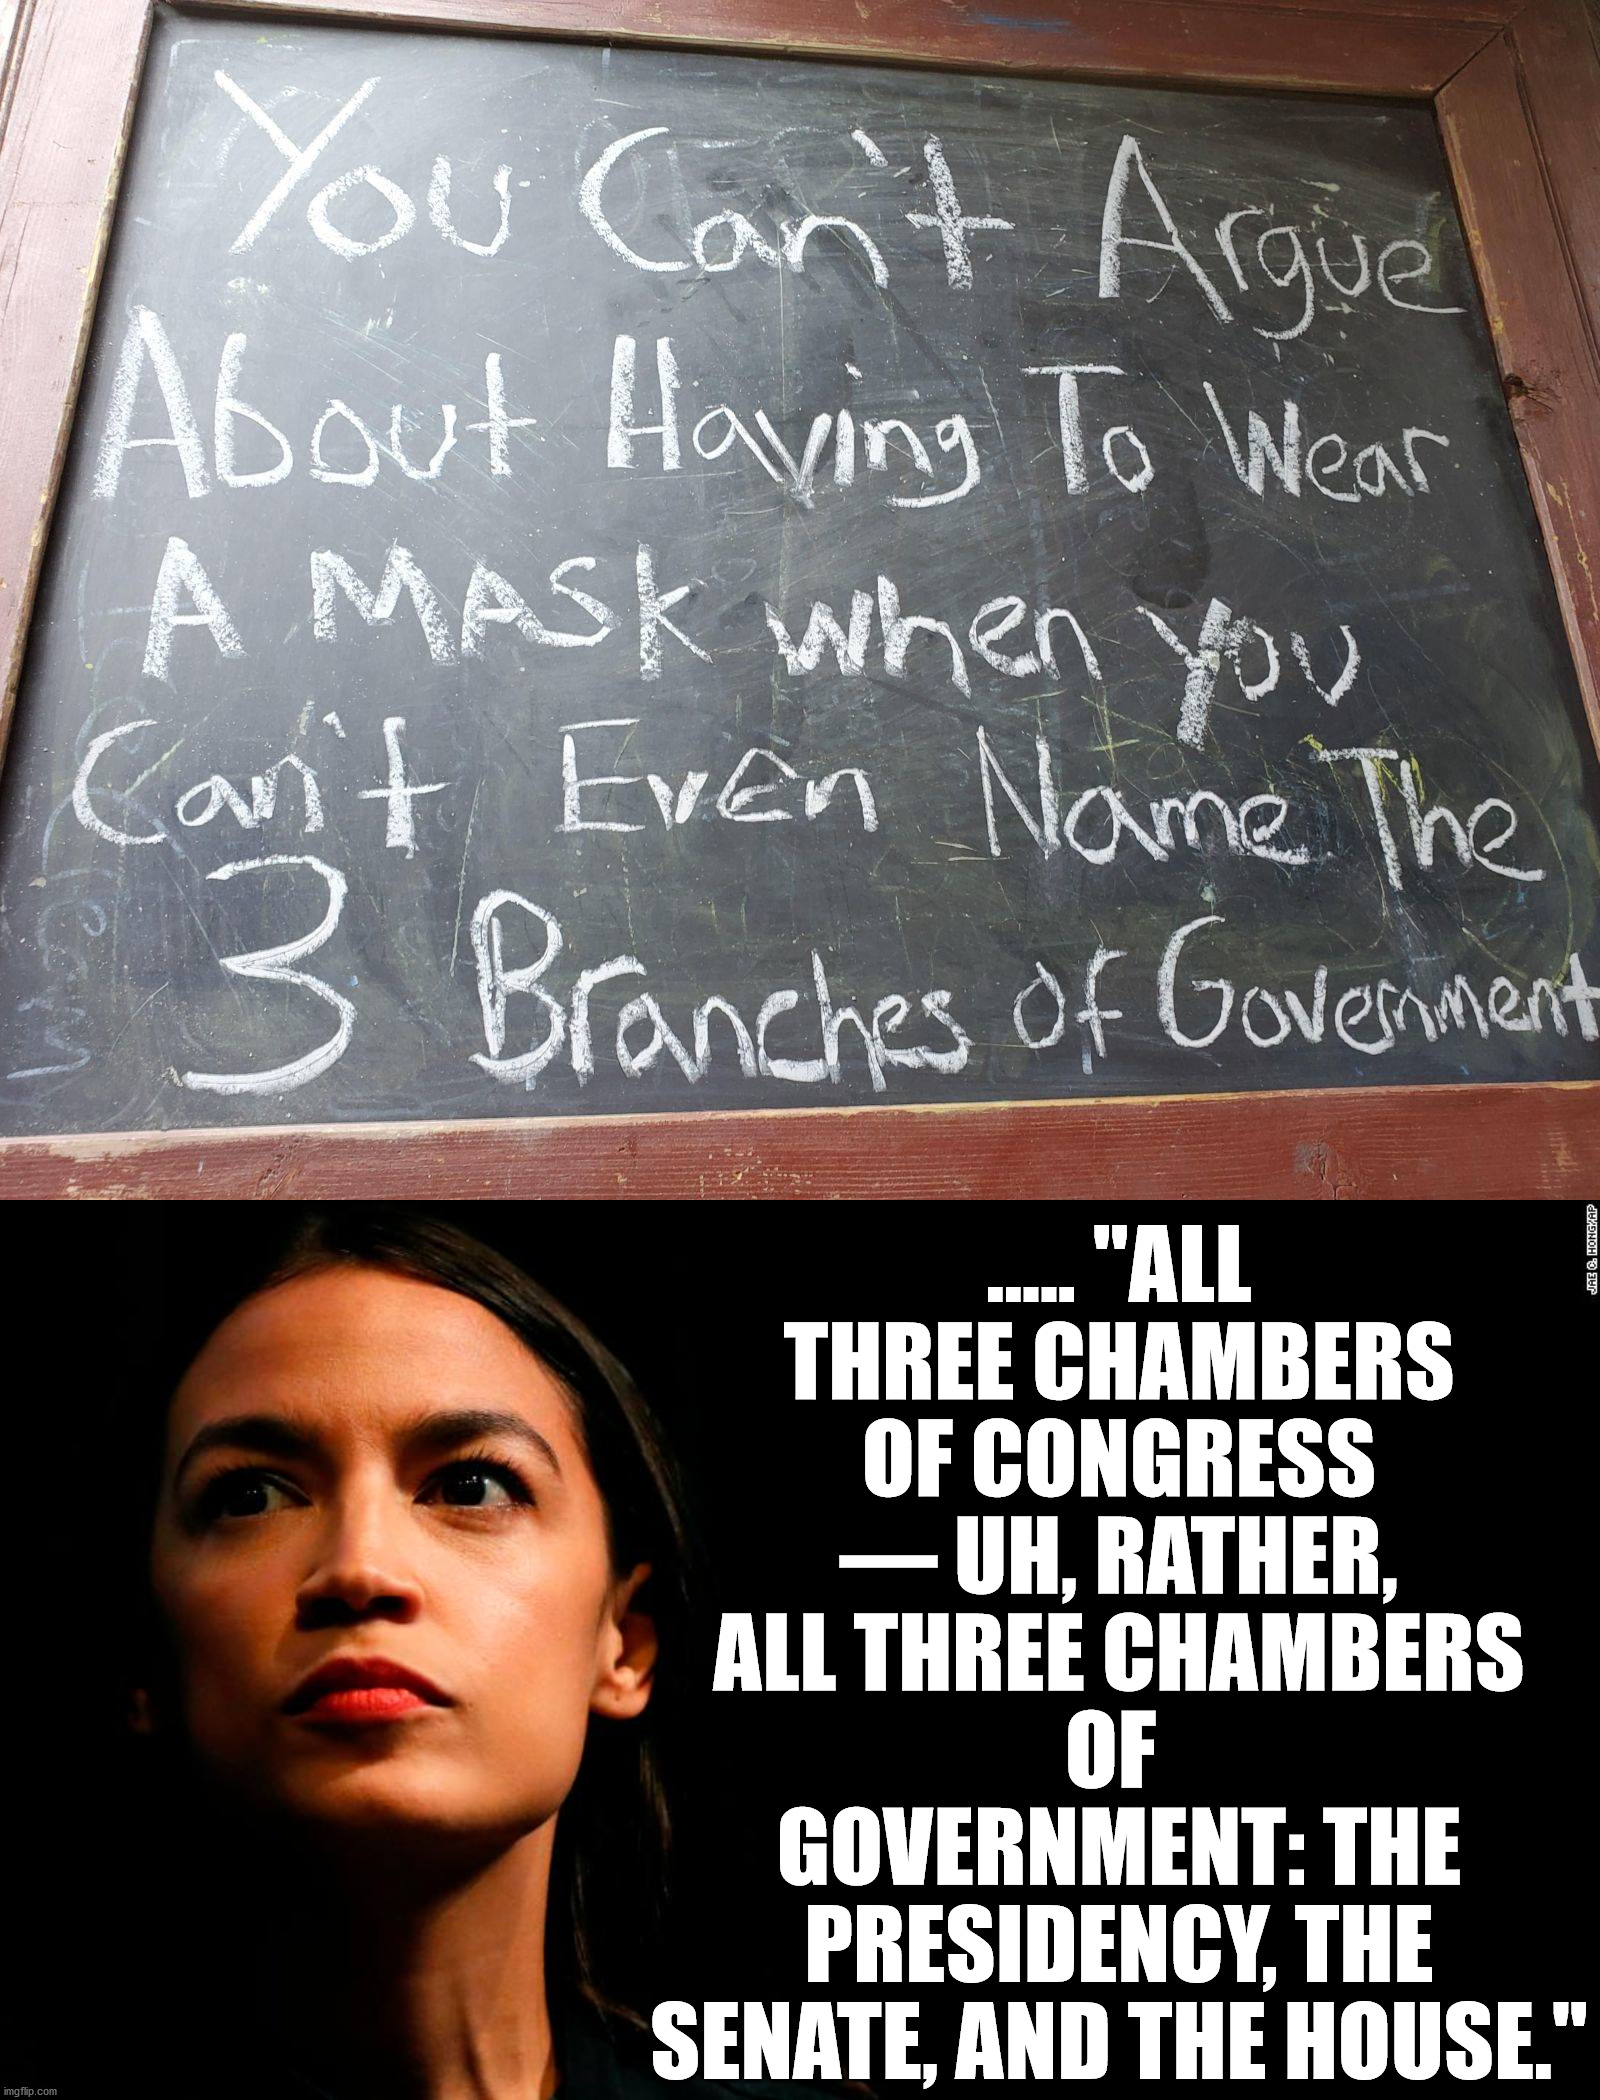 "Yes AOC did say that and she is serving in the government. Boy are we in trouble. |  ..... ""ALL THREE CHAMBERS OF CONGRESS — UH, RATHER, ALL THREE CHAMBERS OF  GOVERNMENT: THE PRESIDENCY, THE SENATE, AND THE HOUSE."" 